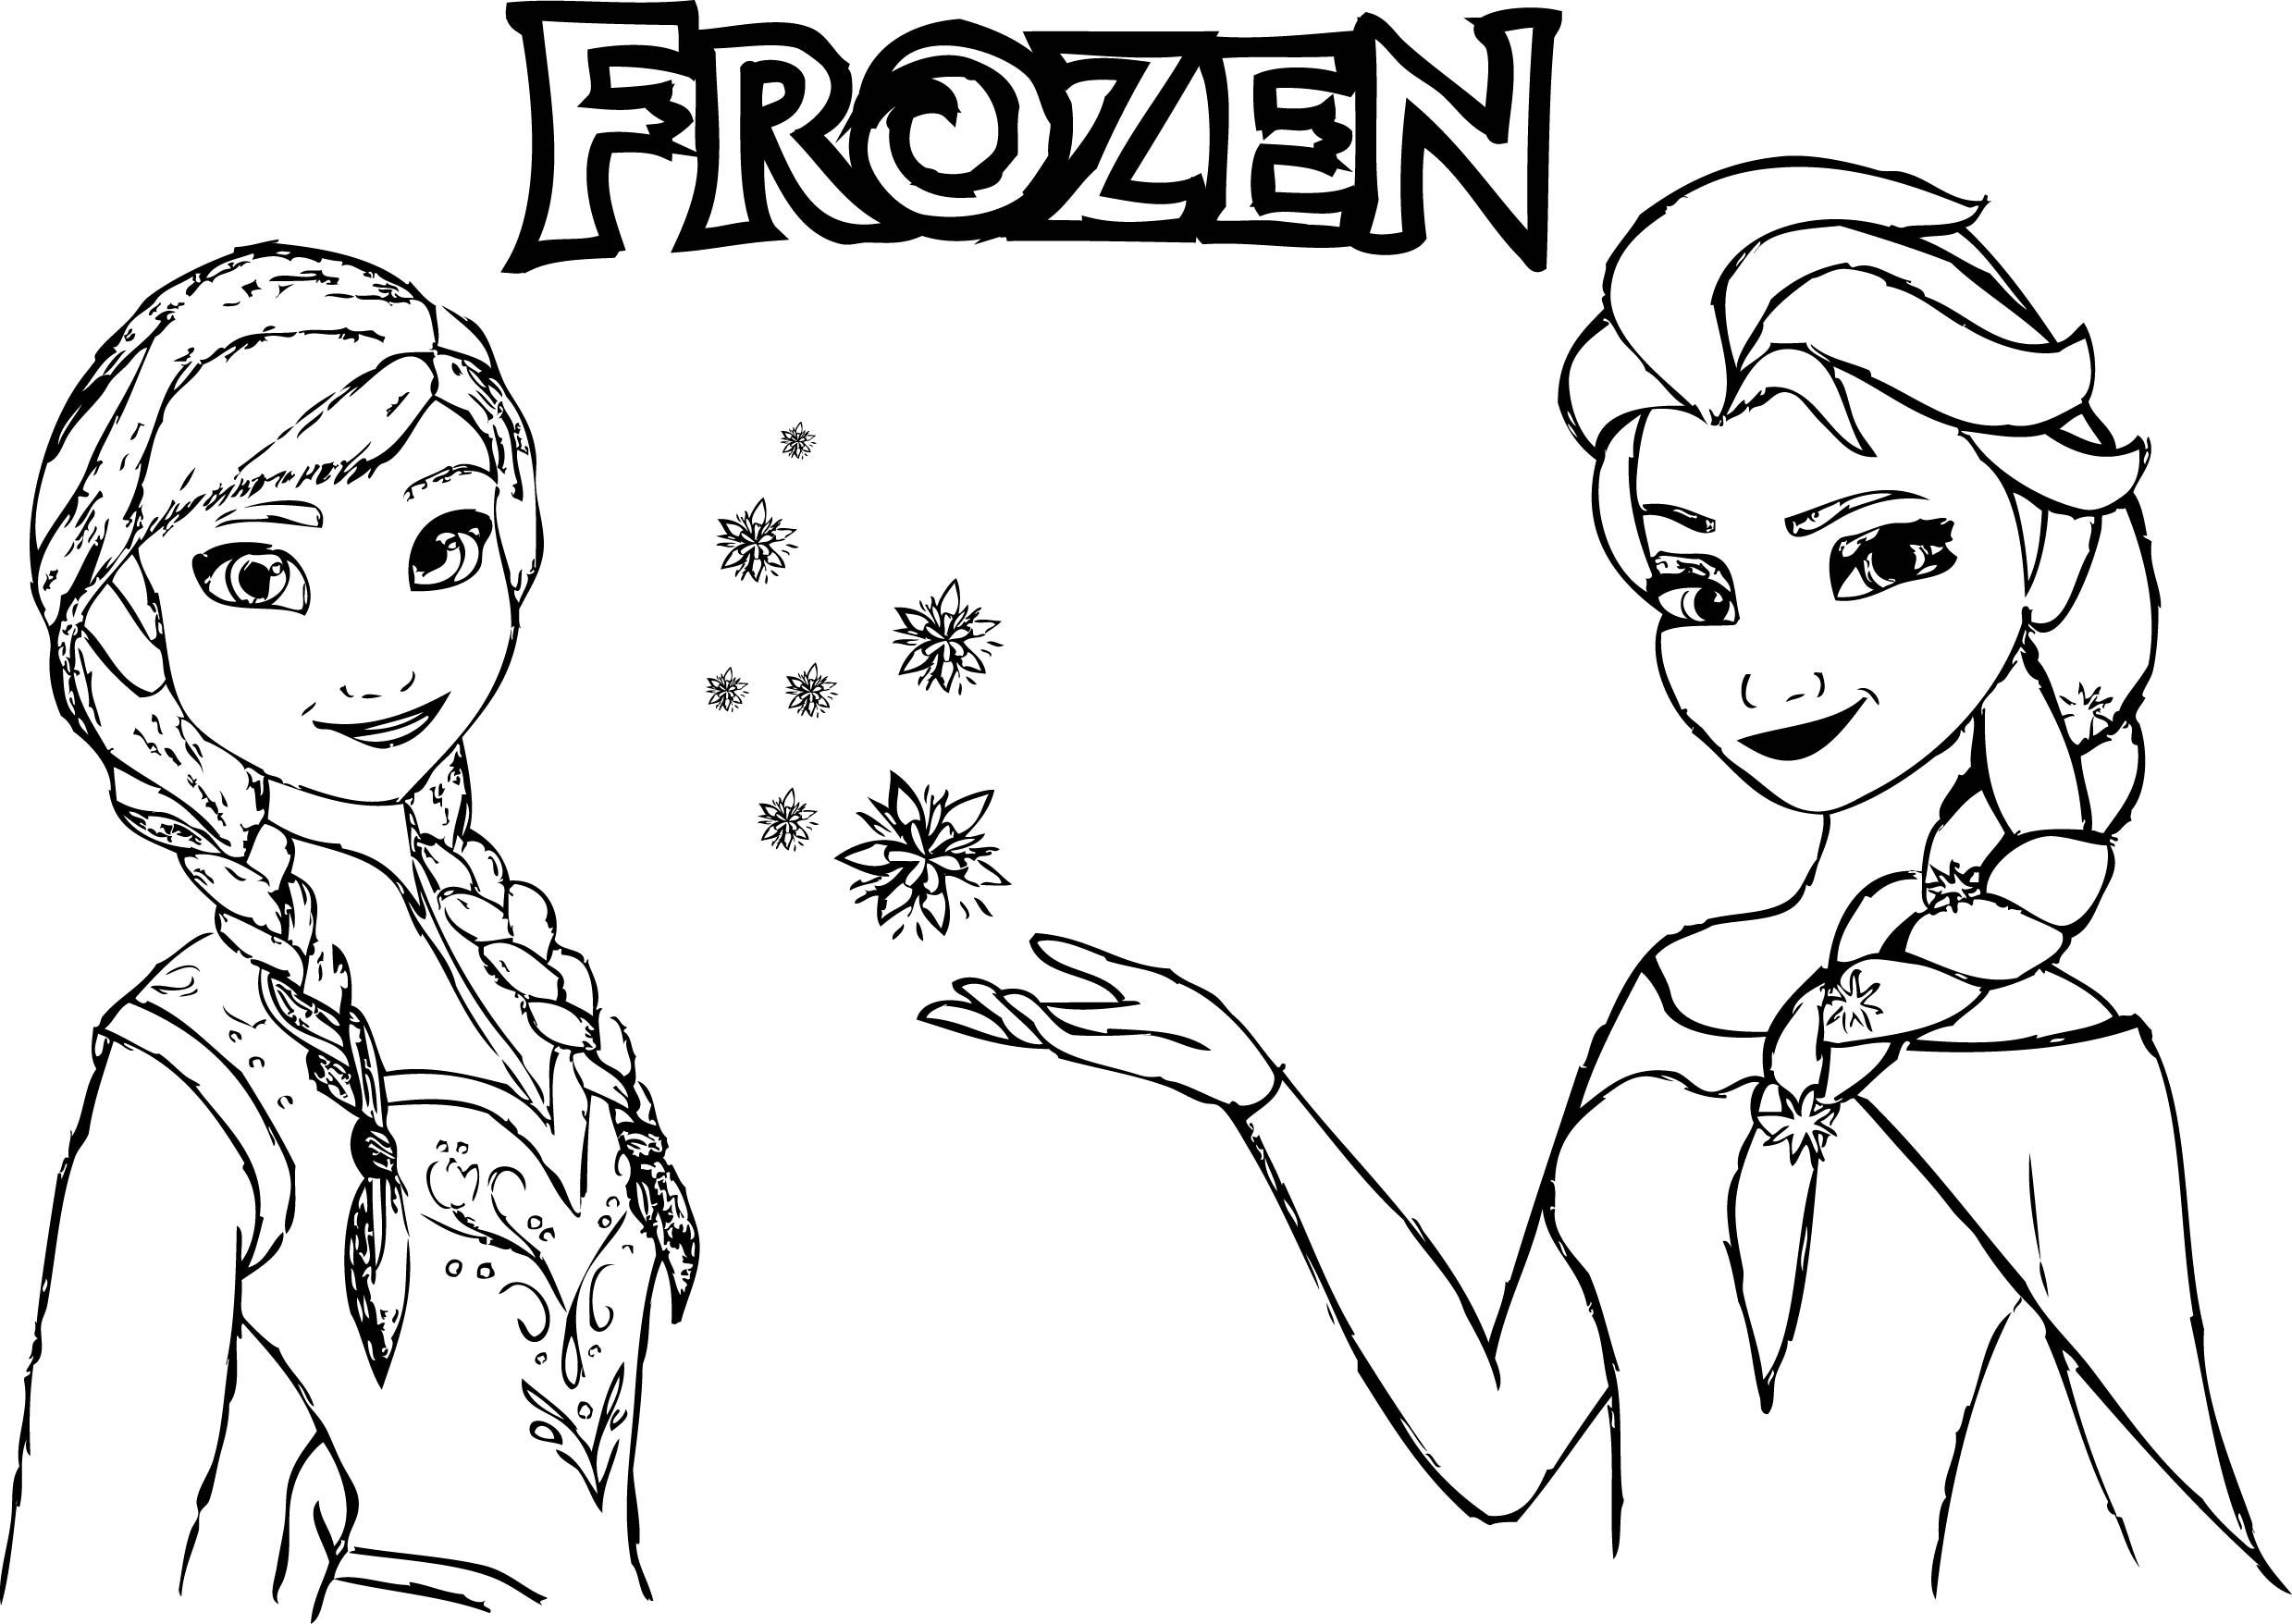 Frozen Anna Elsa Magic Coloring Page wecoloringpage